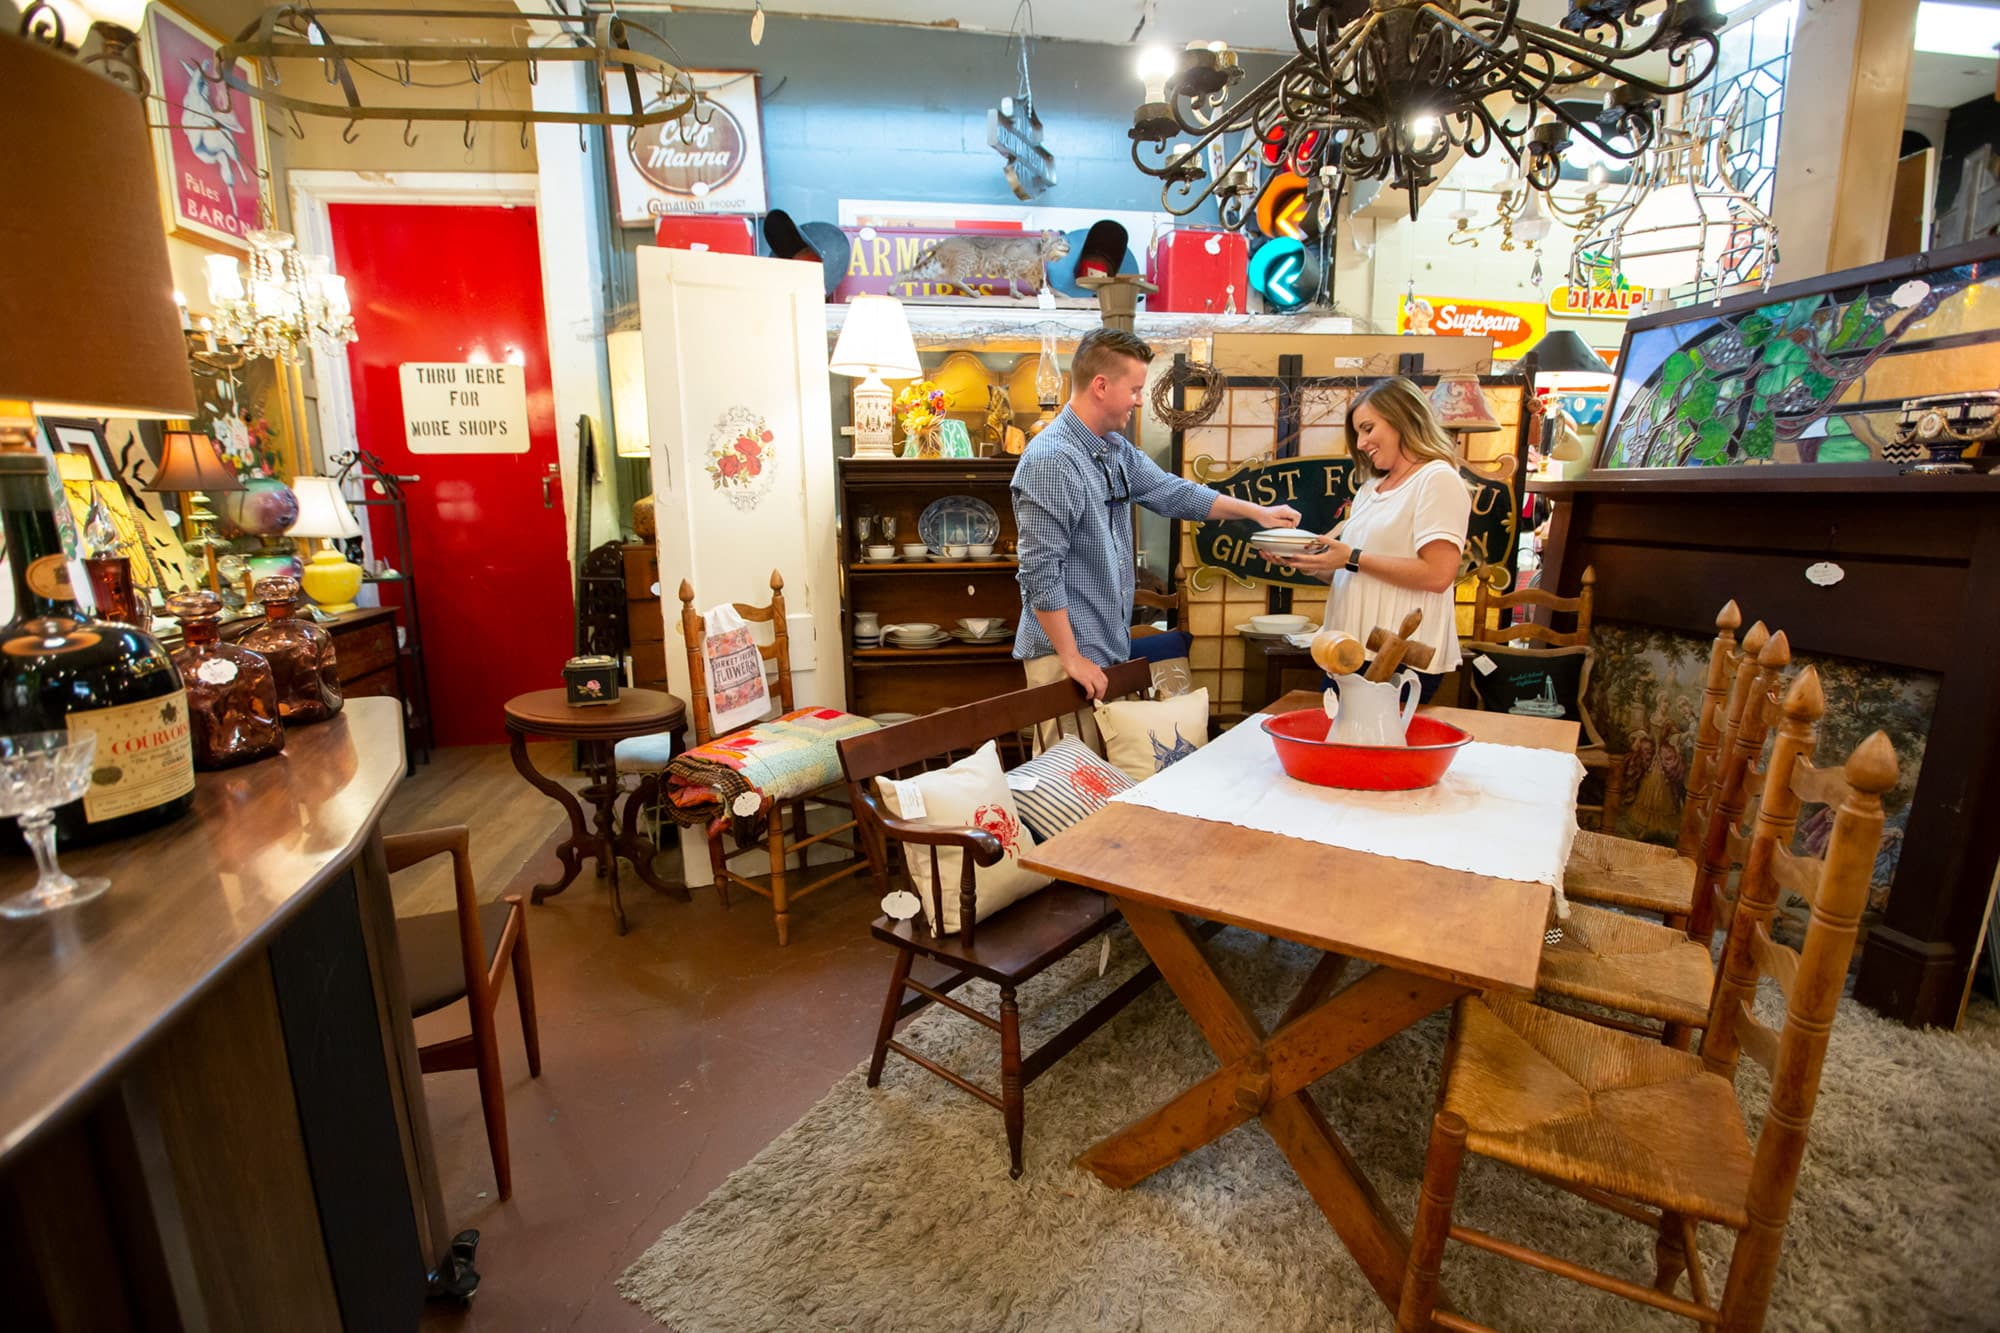 Couple looking at stoneware inside Dixieland Relics in Lakeland, FL. Home decor and antique furniture on display throughout room.